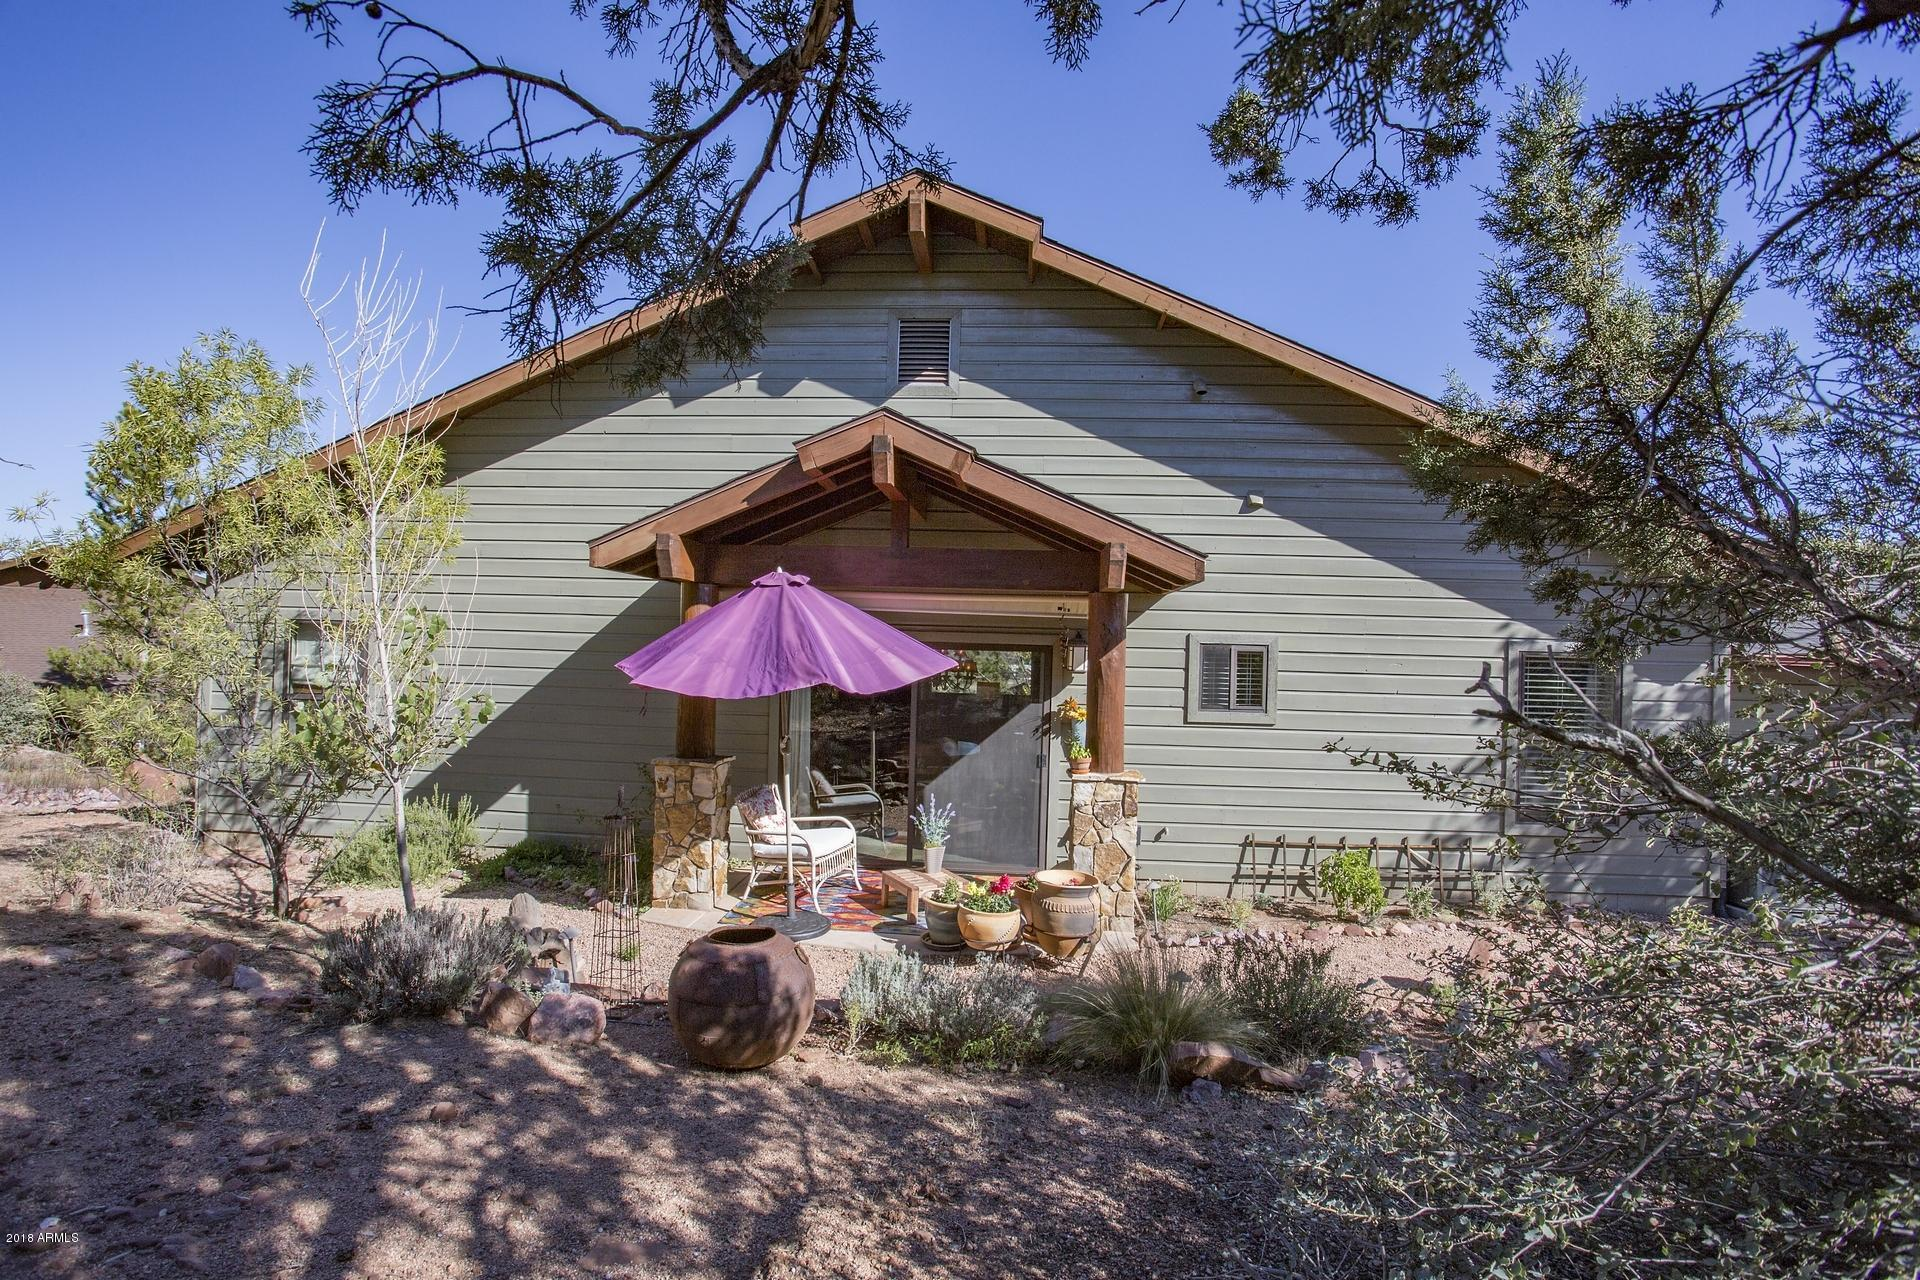 802 W Green Valley Circle, Payson, 85541 - SOLD LISTING, MLS # 5849192 Zillow Real Estate Gr Valley Map on